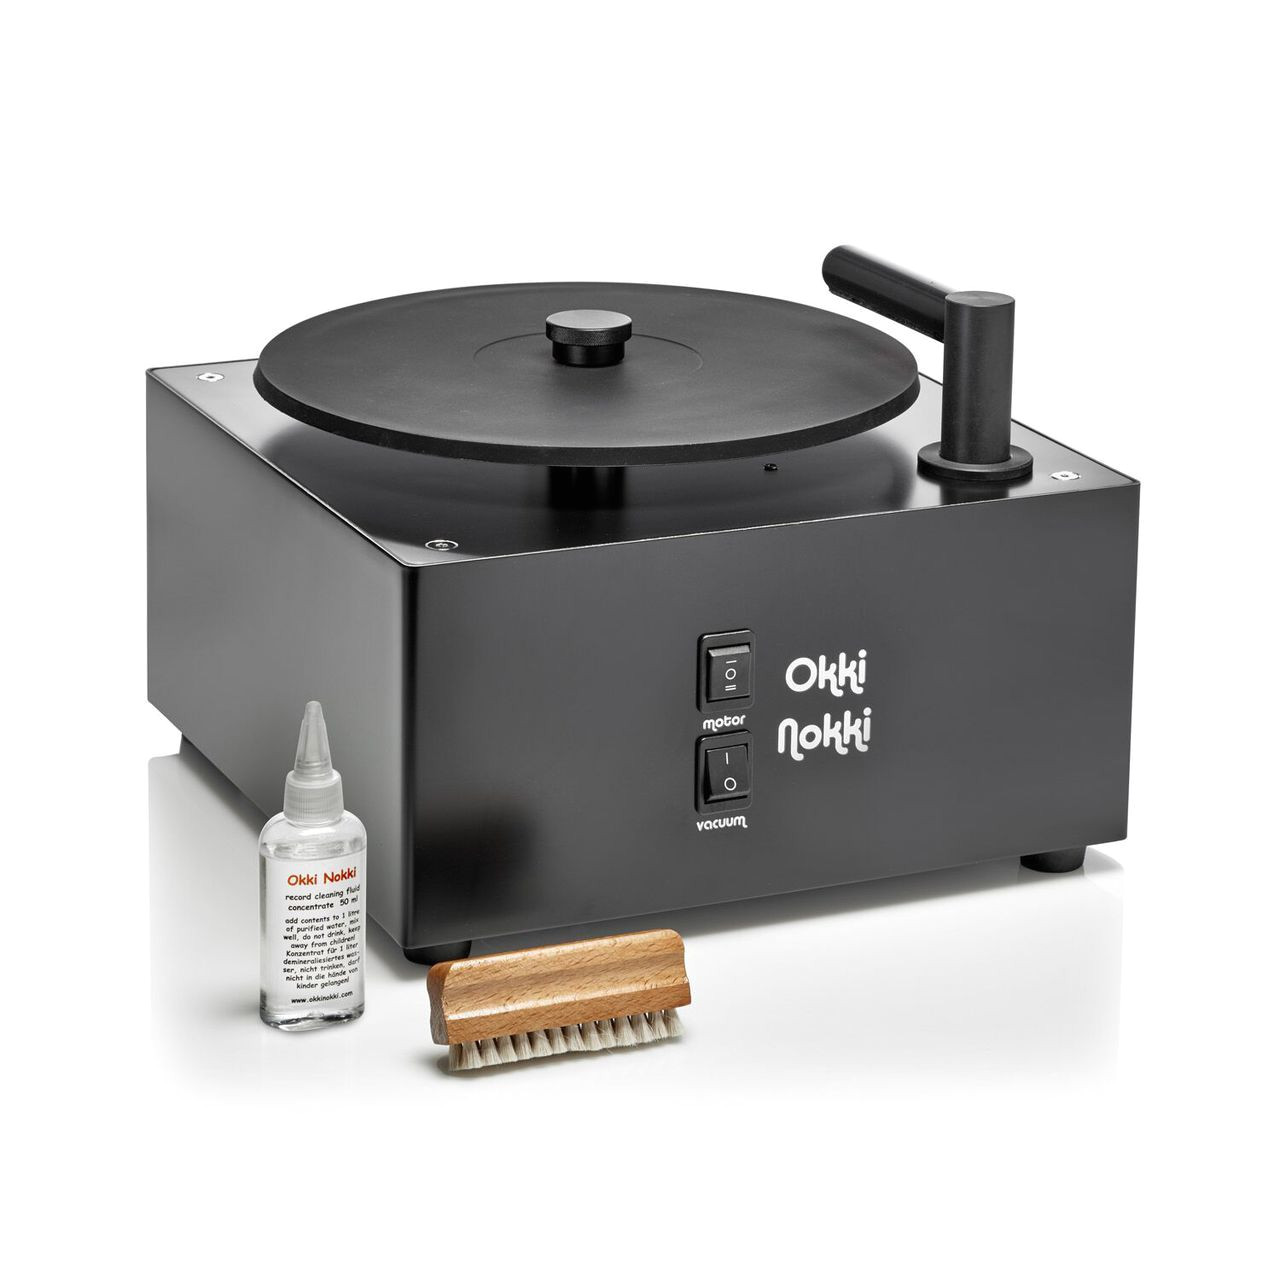 Used Restaurant Equipment for Sale Portland oregon Okki Nokki Record Cleaner Mkii the Best Value In Record Cleaning